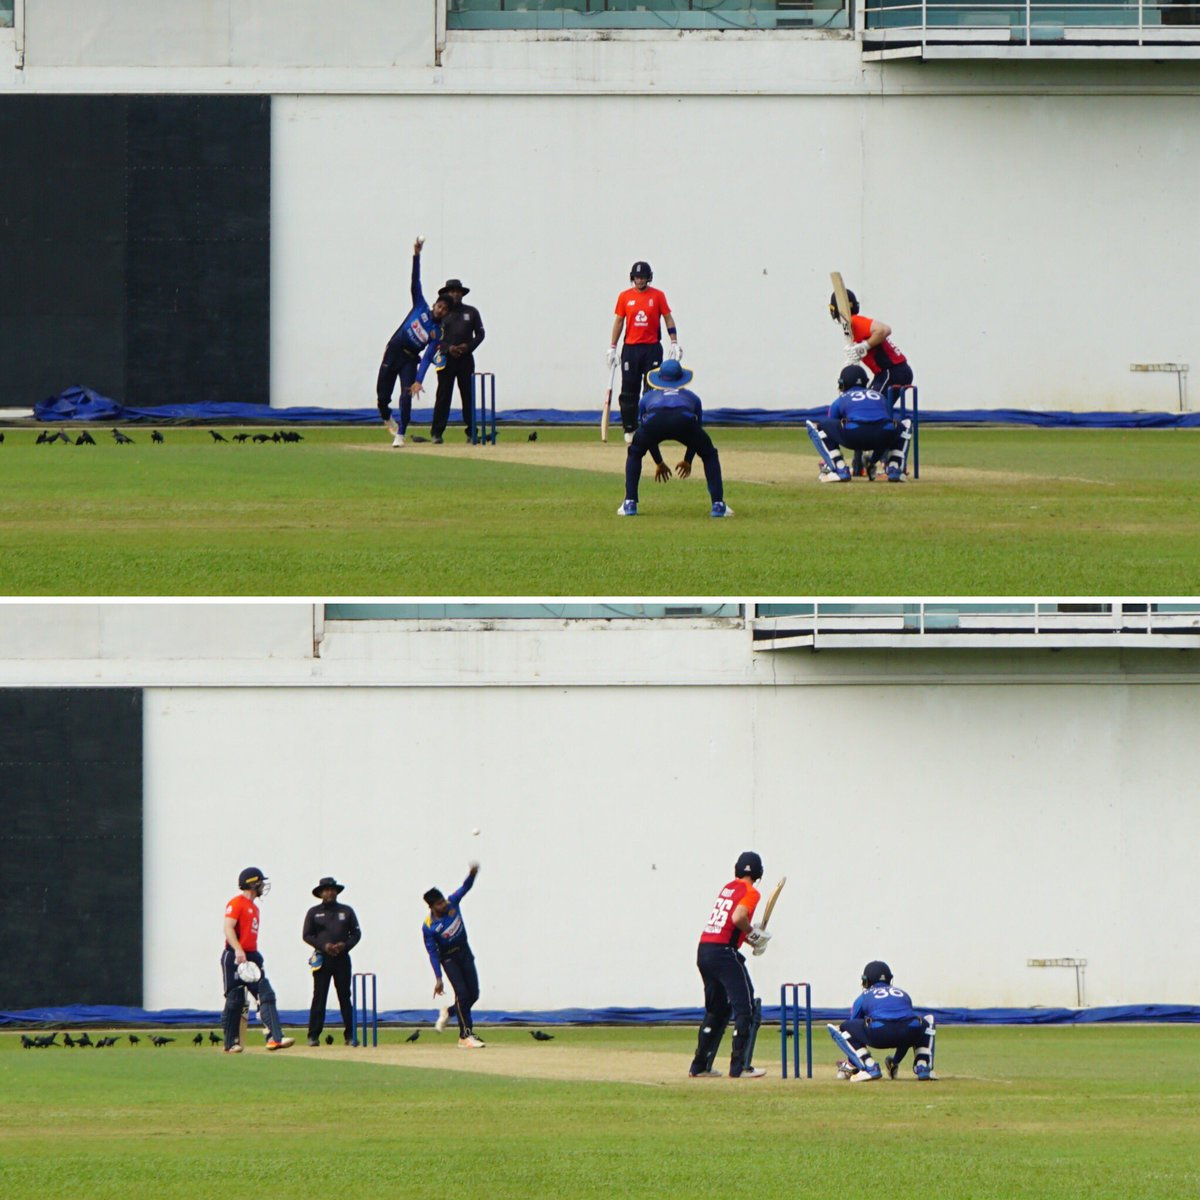 """""""He bowls with his left, he bowls with his right..."""" Ambidextrous bowler Kamindu Mendis is facing England in Colombo. #bbccricket"""